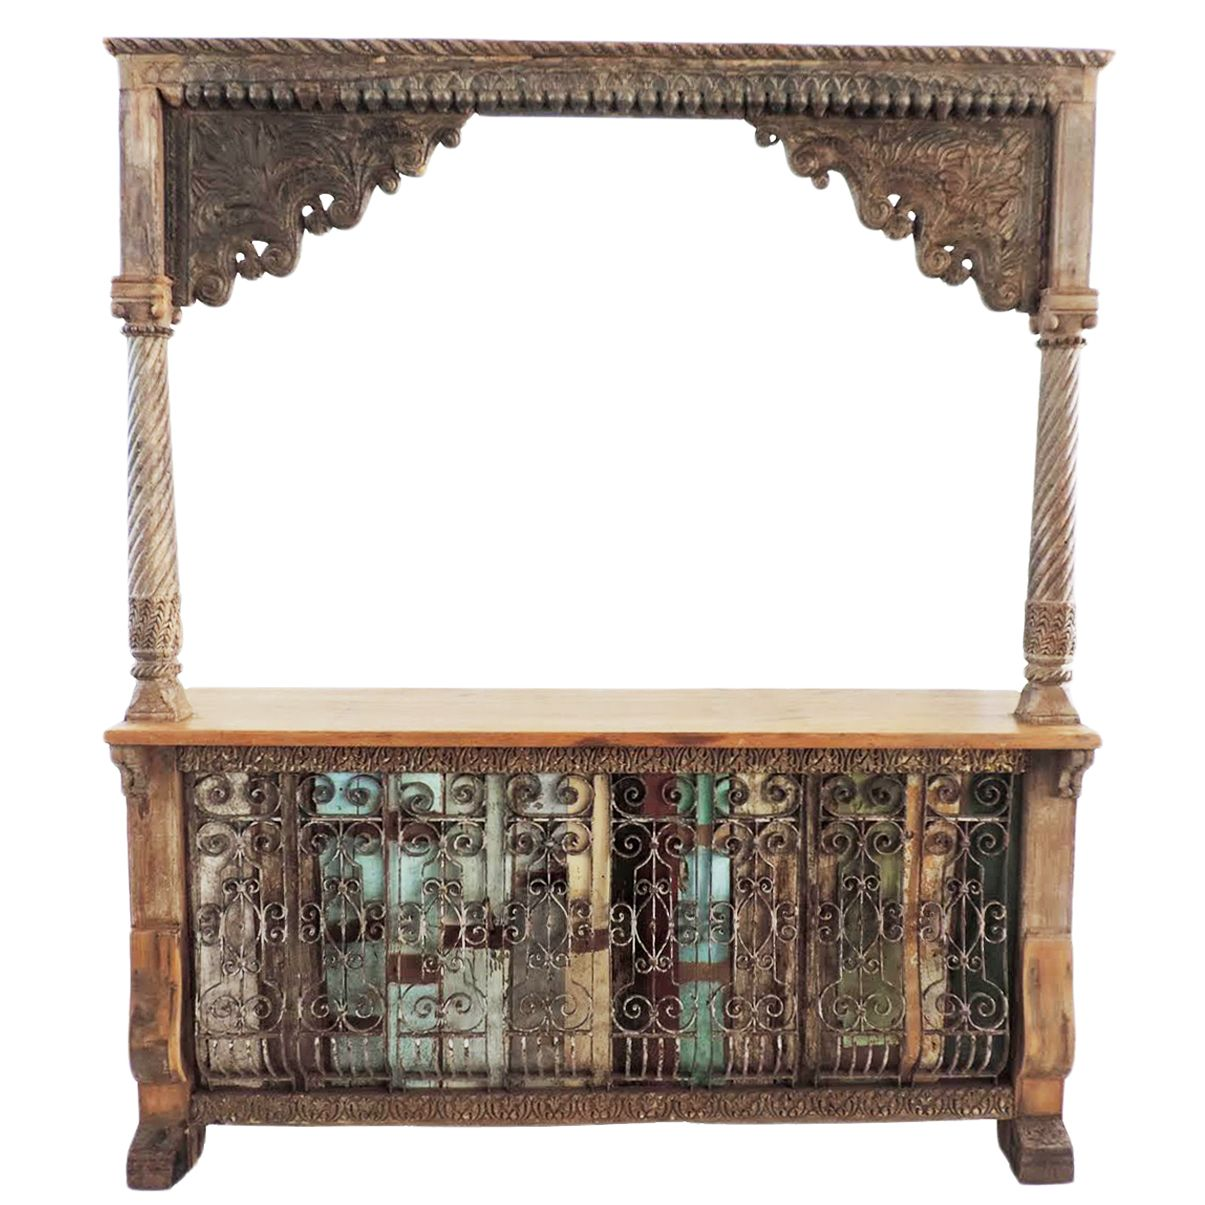 Unique Old Indian Architectural Carved Wood Bar With Beautiful Carving All Over And Iron Scroll Work Detail O Bar Furniture Boho Chic Interior Design Furniture